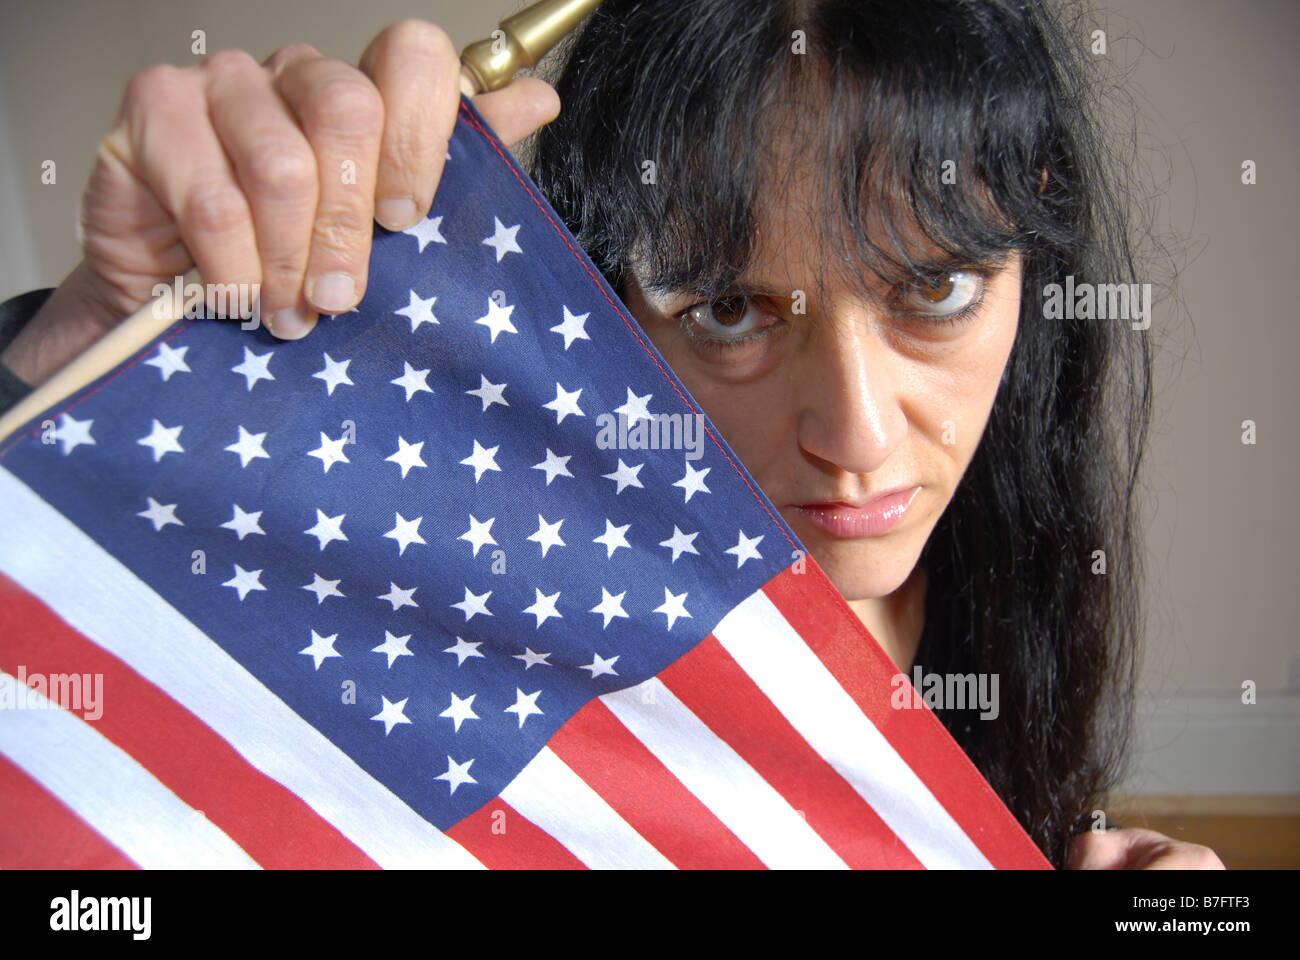 A no nonsence woman with black hair holding the American Stars & Stripes - Stock Image